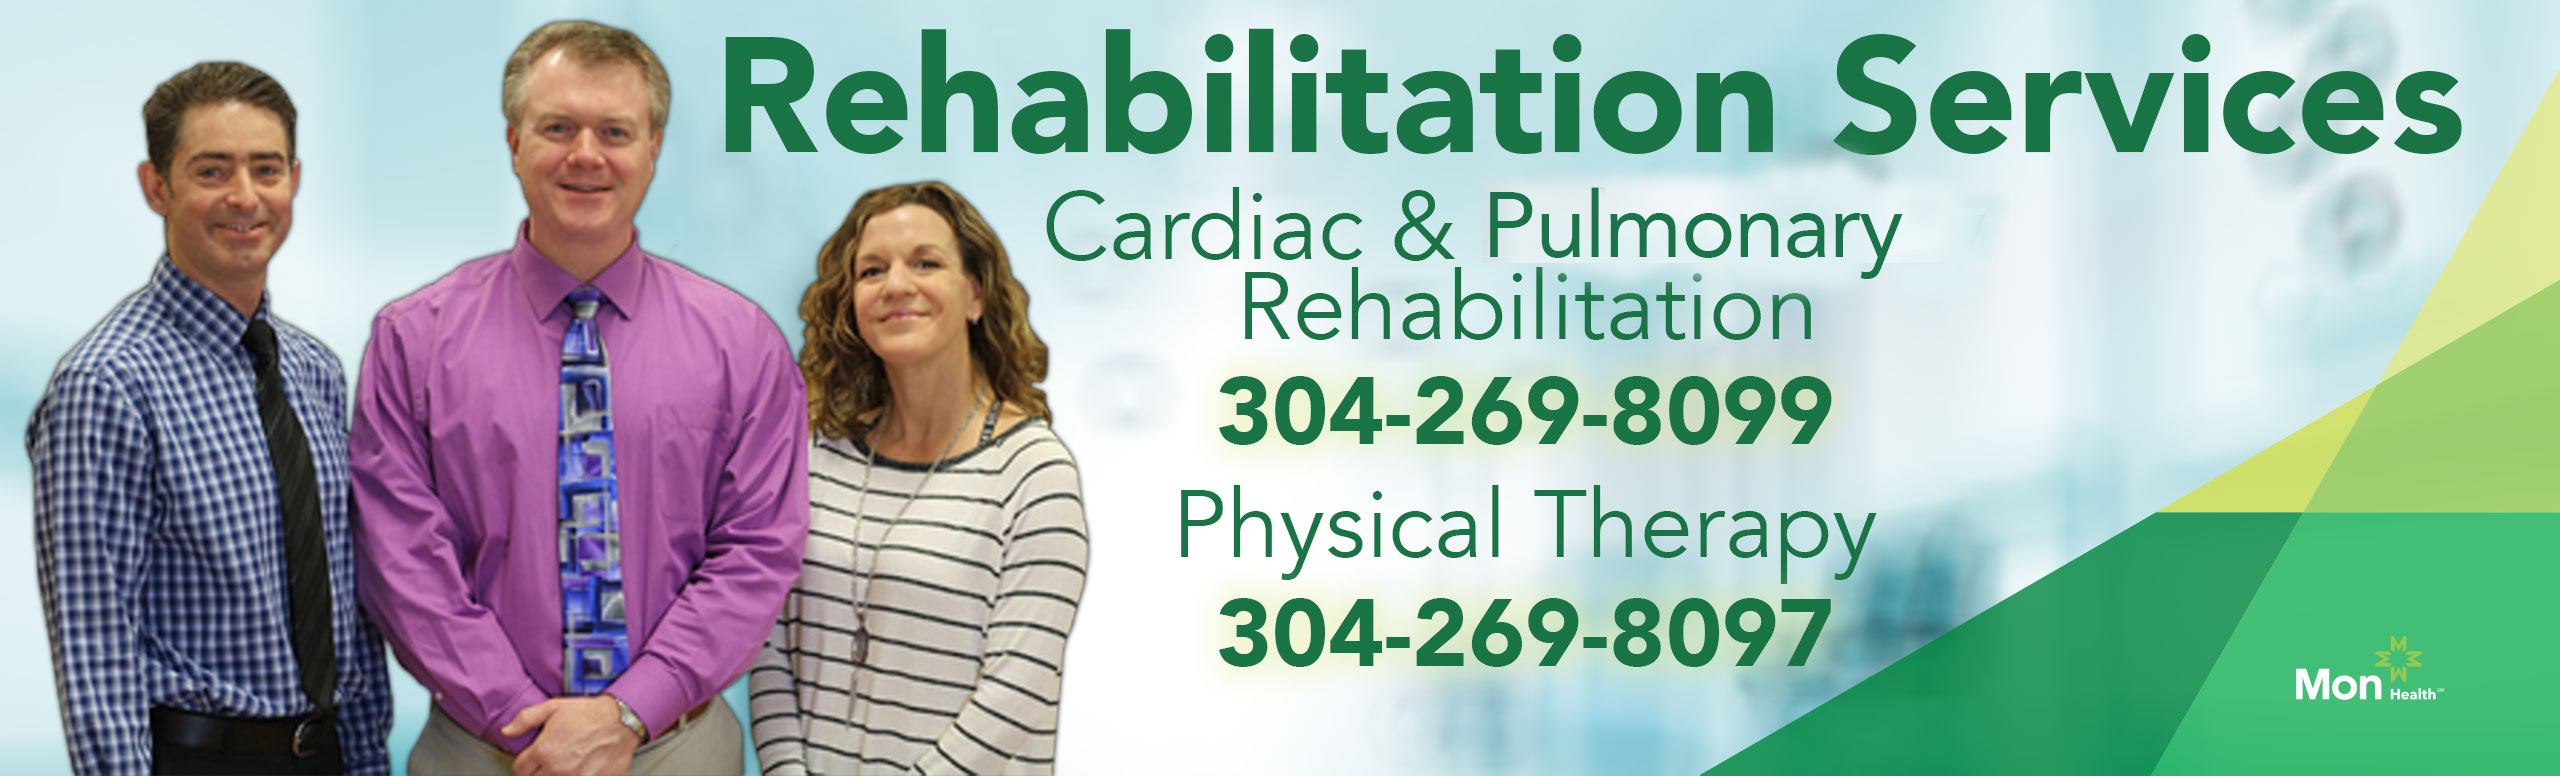 Rehabilitation Services: a contact number is listed for Cardiac and pulmonary rehabilitation, 304-269-8099 and for physical therapy, 304-269-8097.  There is an image of three smiling individuals, two men and a women.